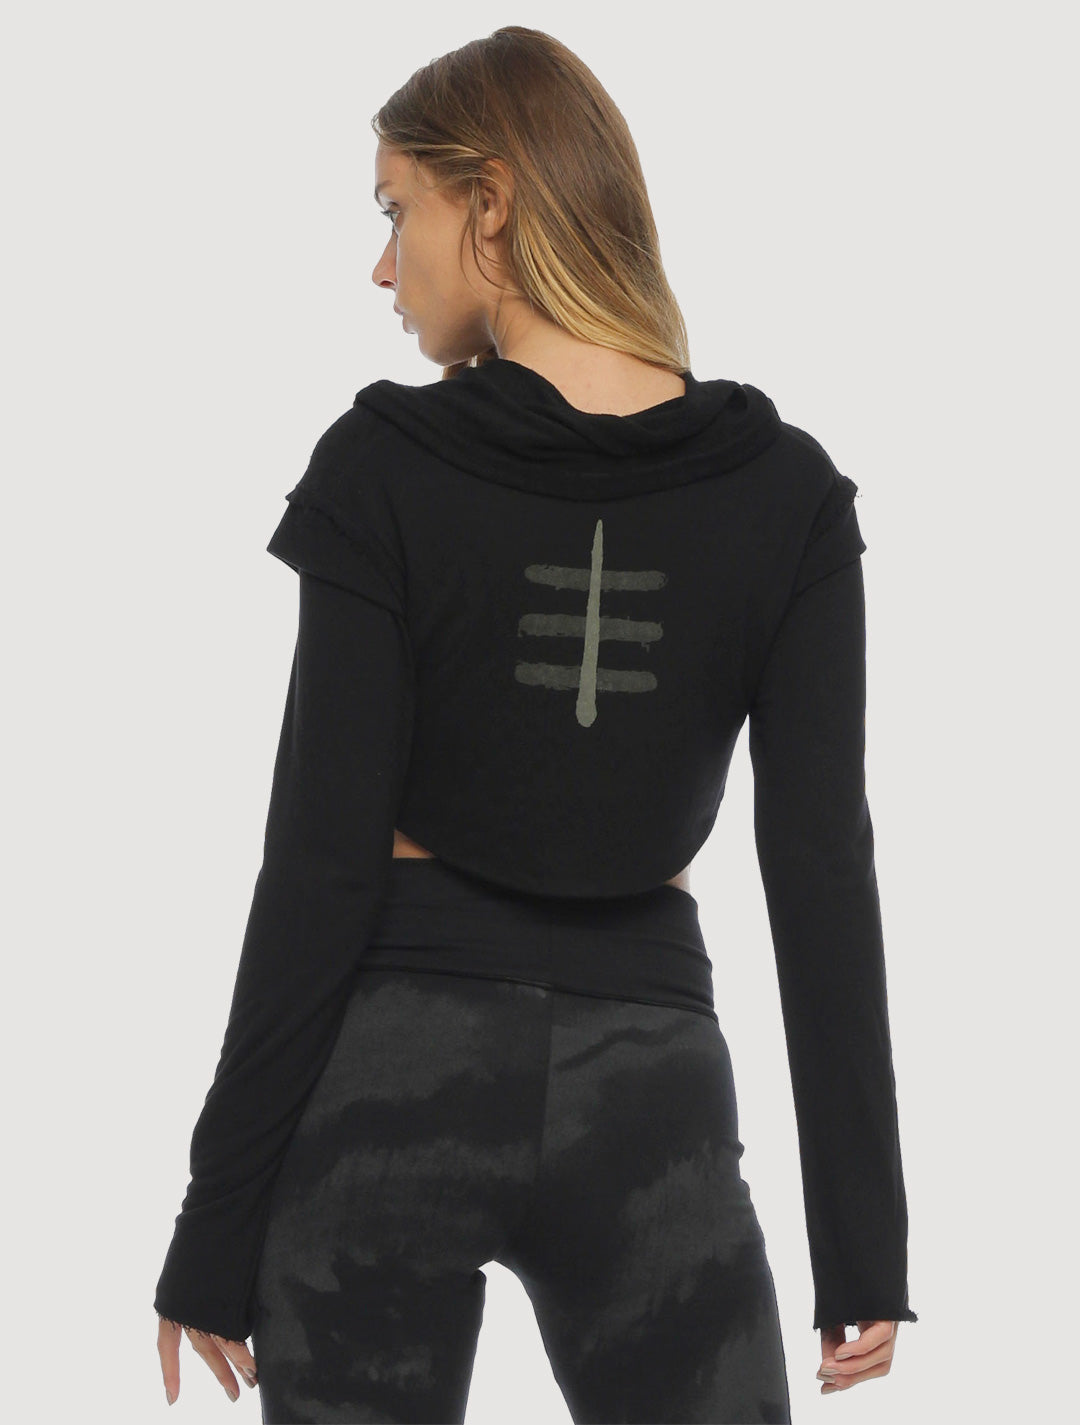 XB Rmx Crop Sweater - Psylo Fashion